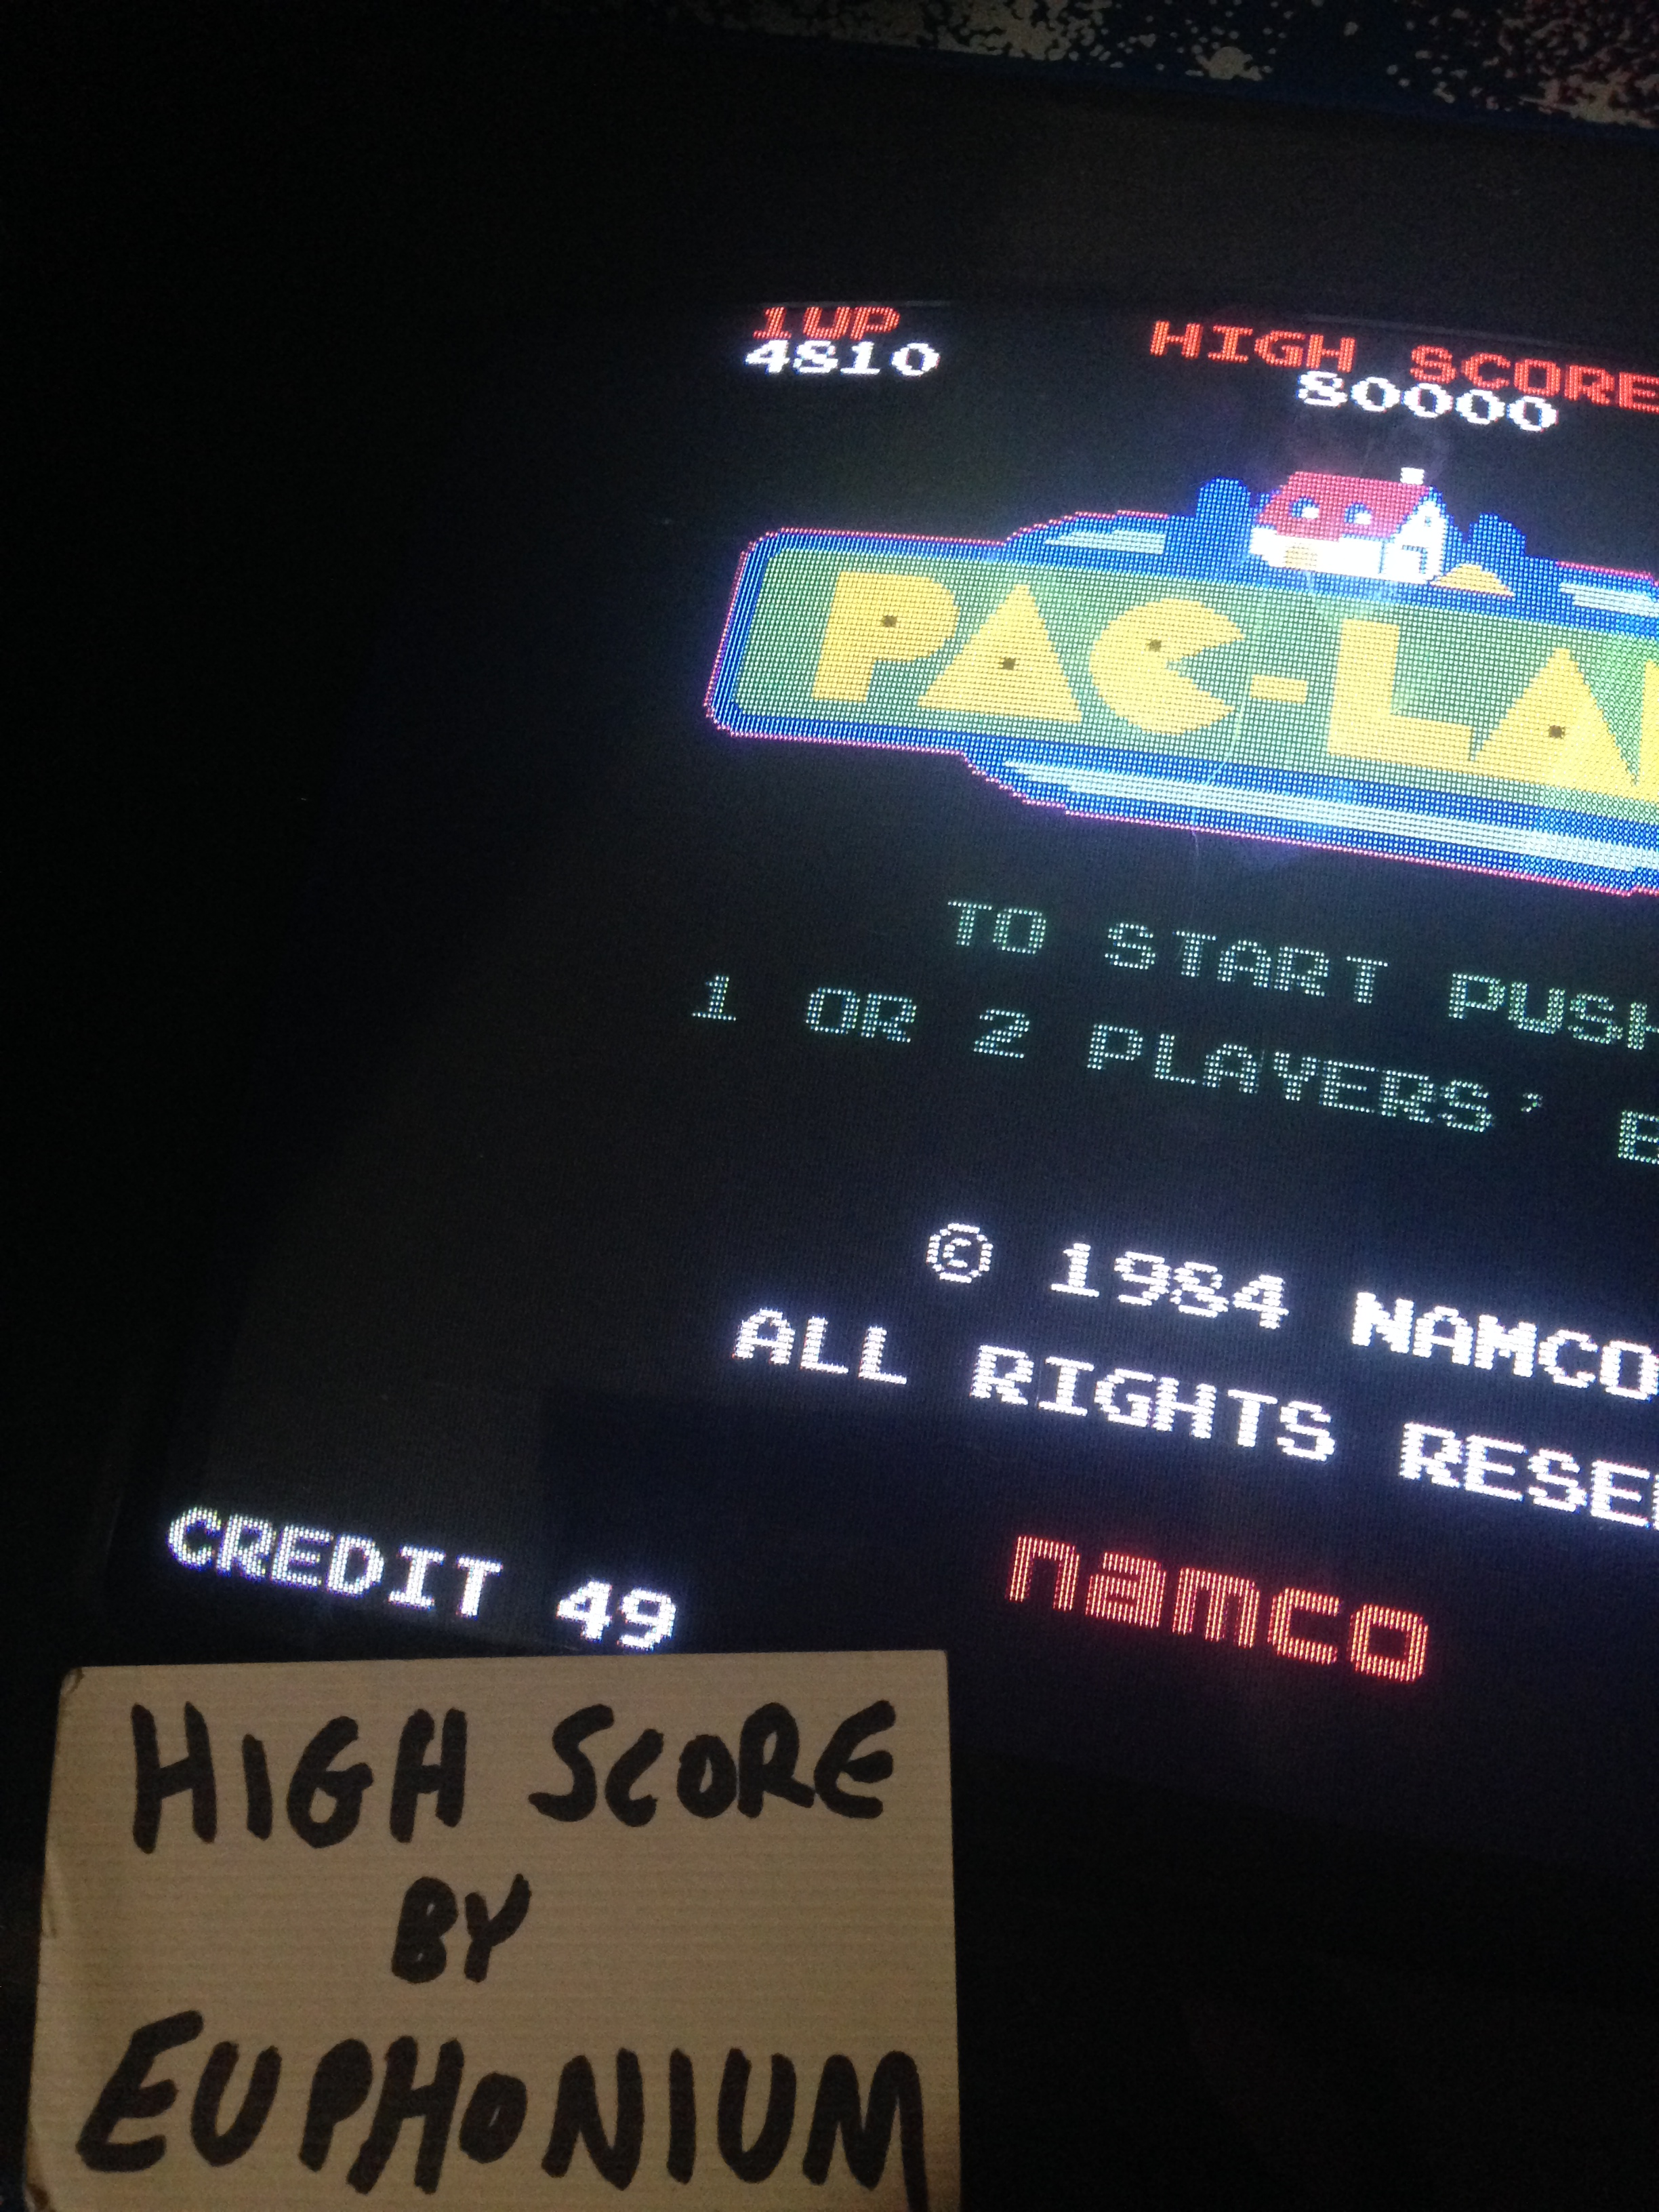 Pac-Land 4,810 points